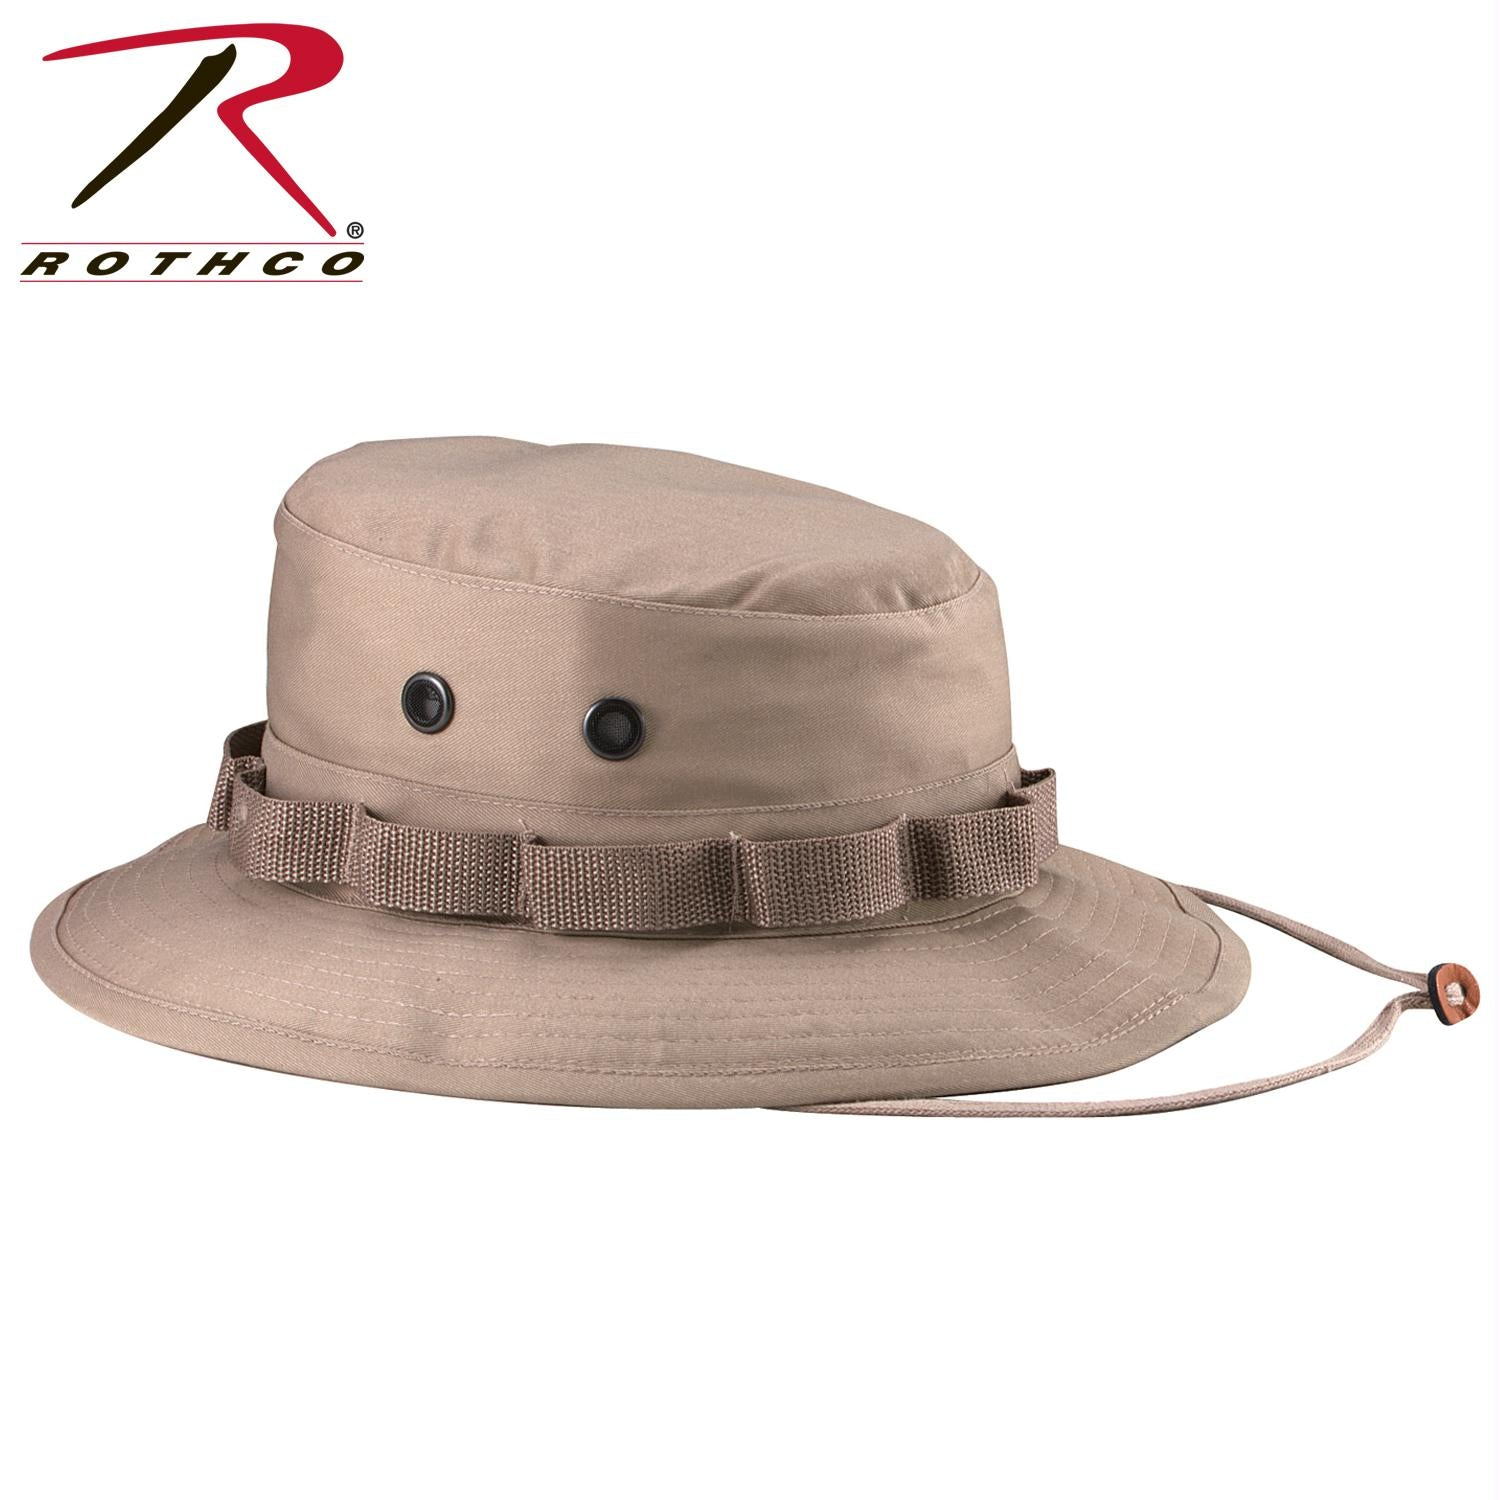 Rothco 100% Cotton Rip-Stop Boonie Hat - Khaki / 7 3/4